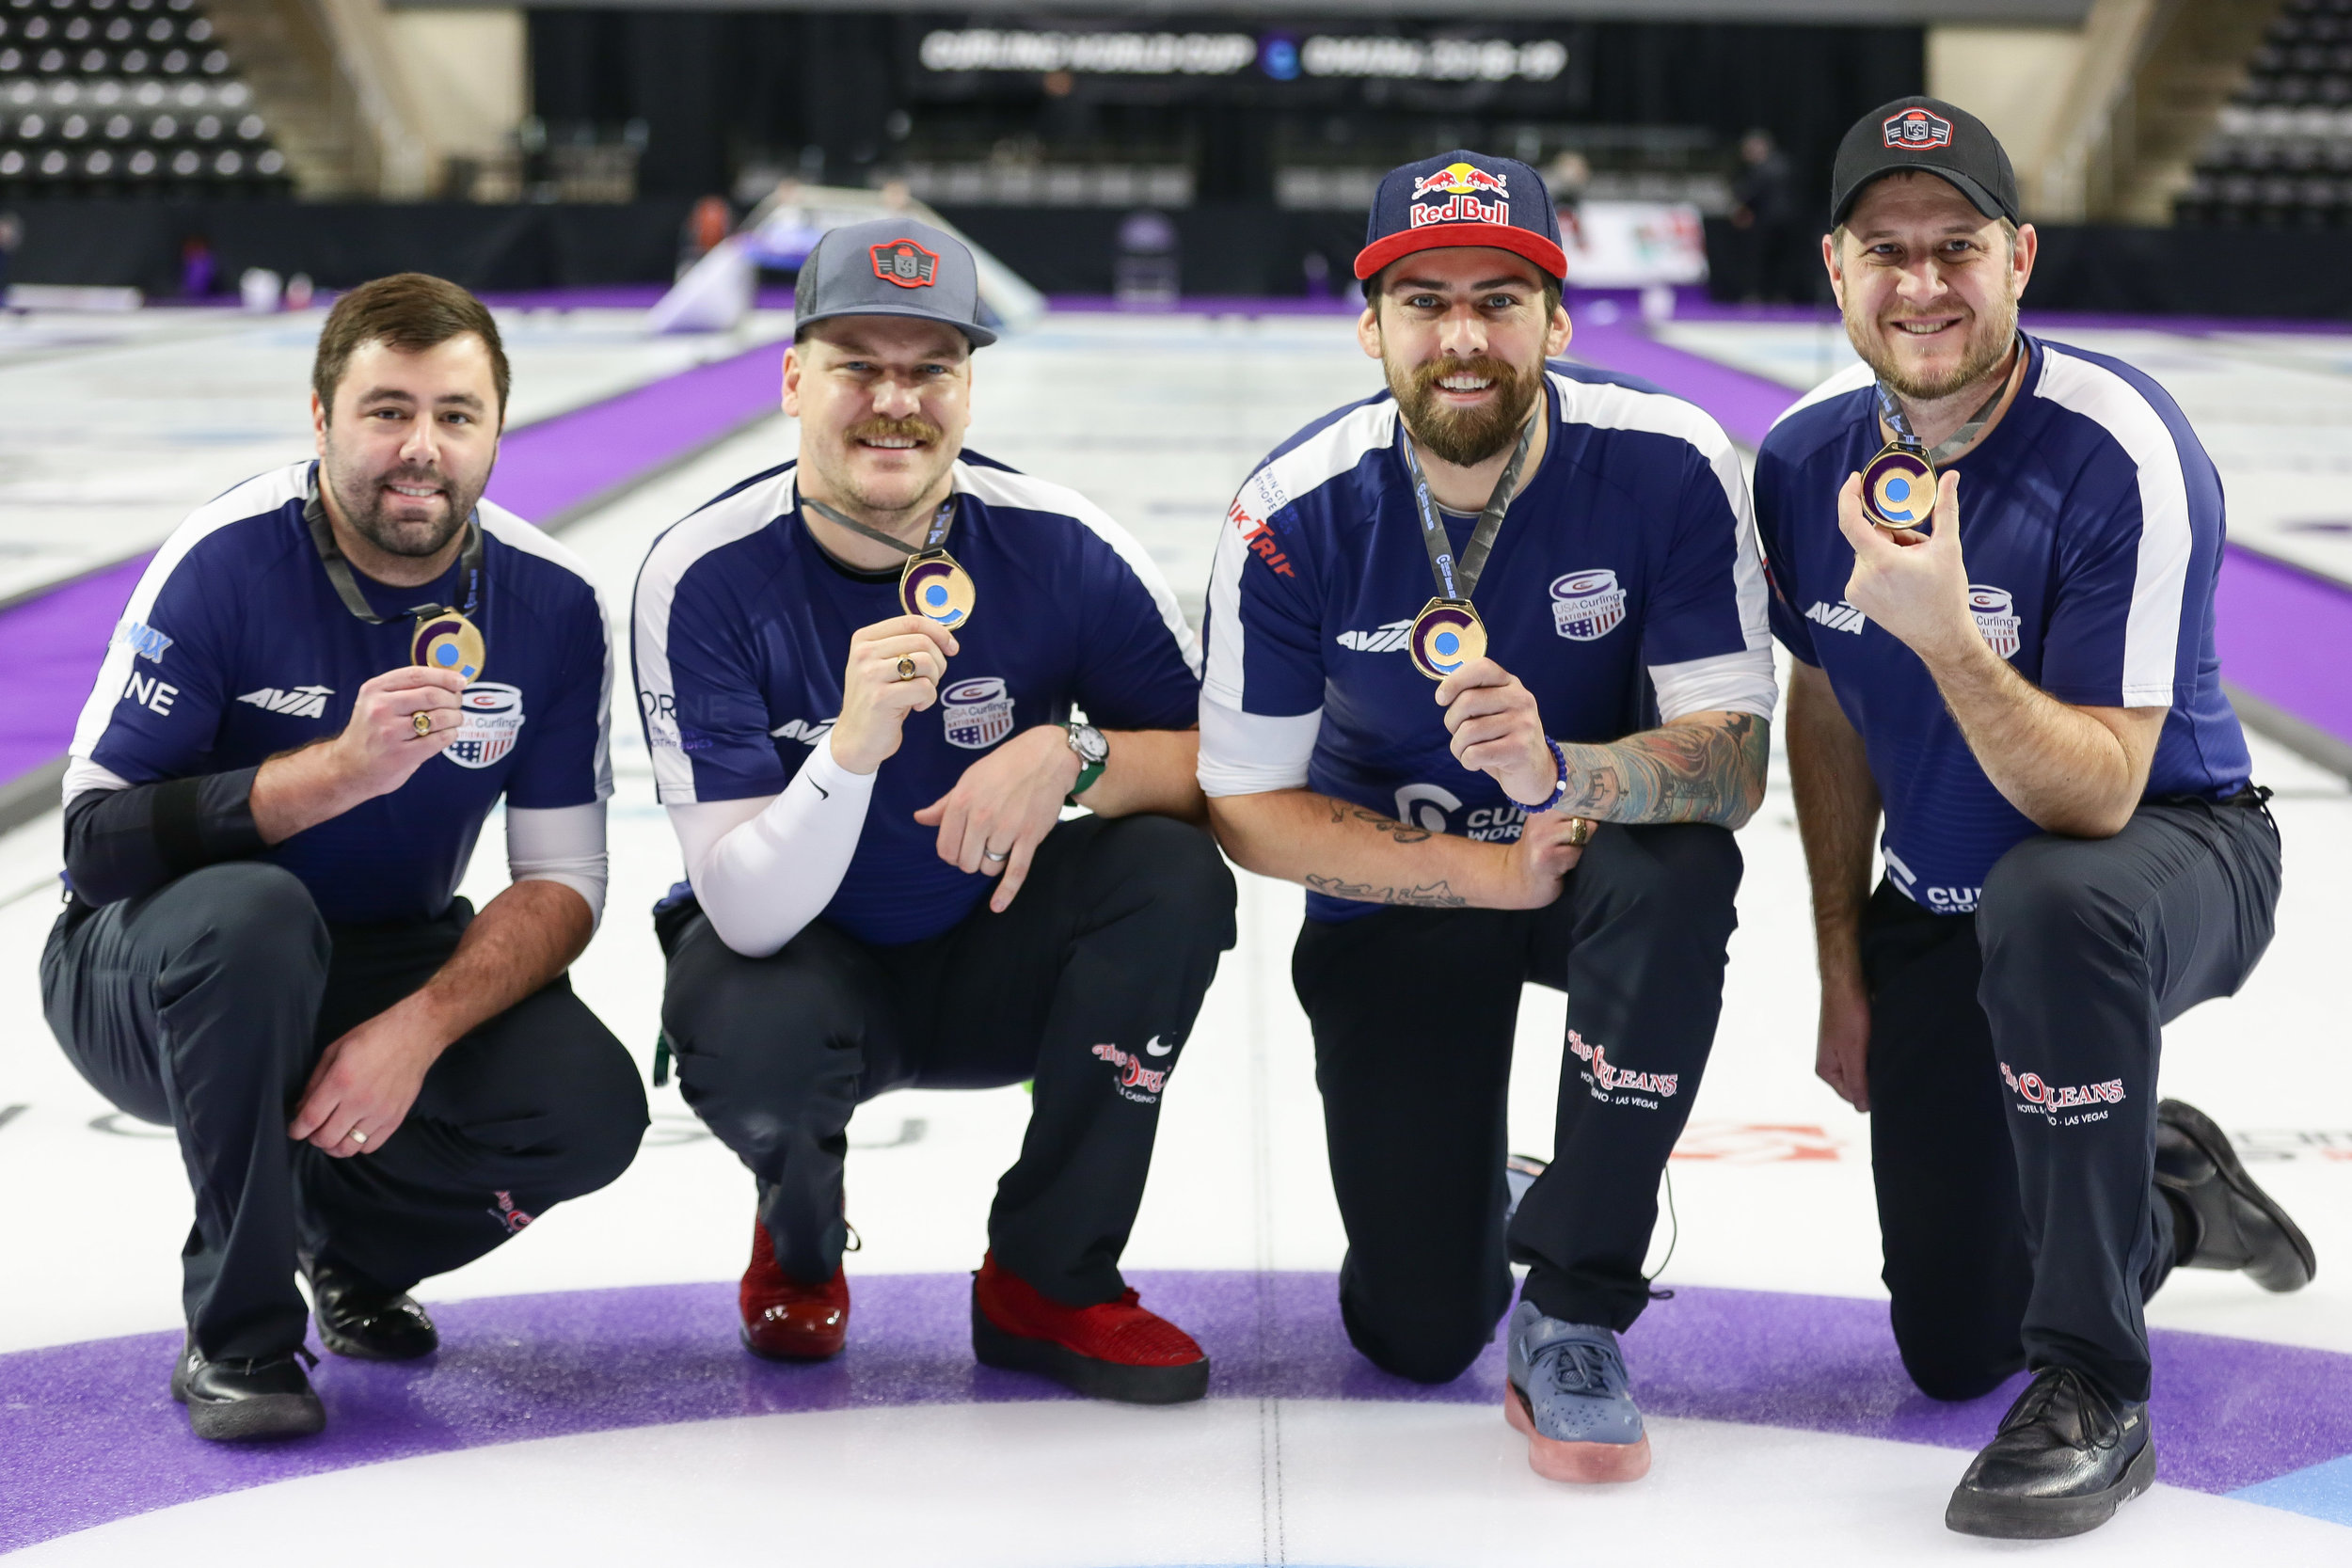 2018 Curling World Cup